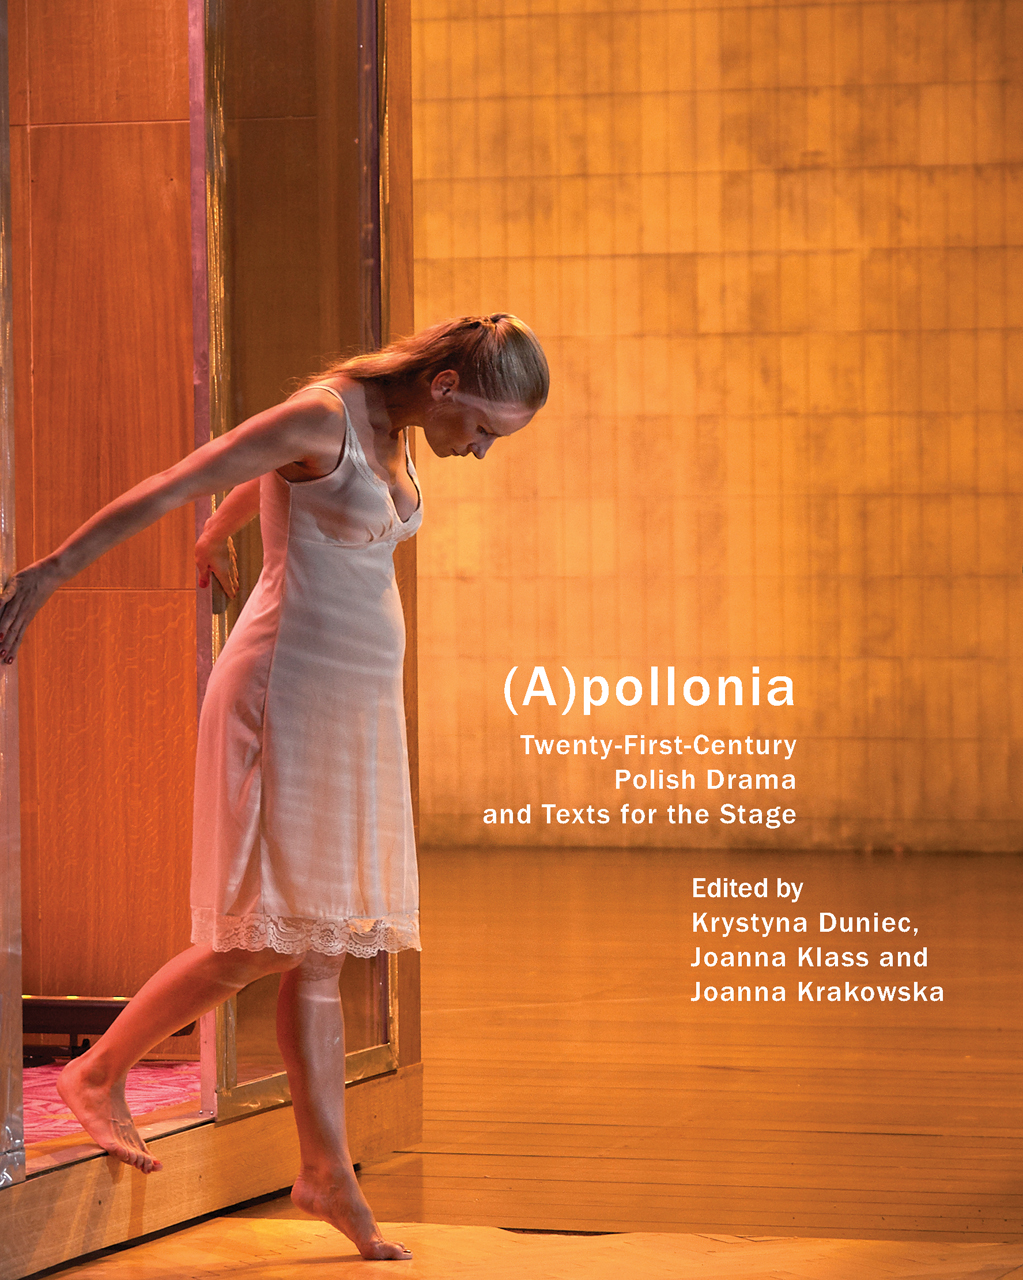 (A)pollonia: Twenty-First Century Polish Drama and Texts for the Stage